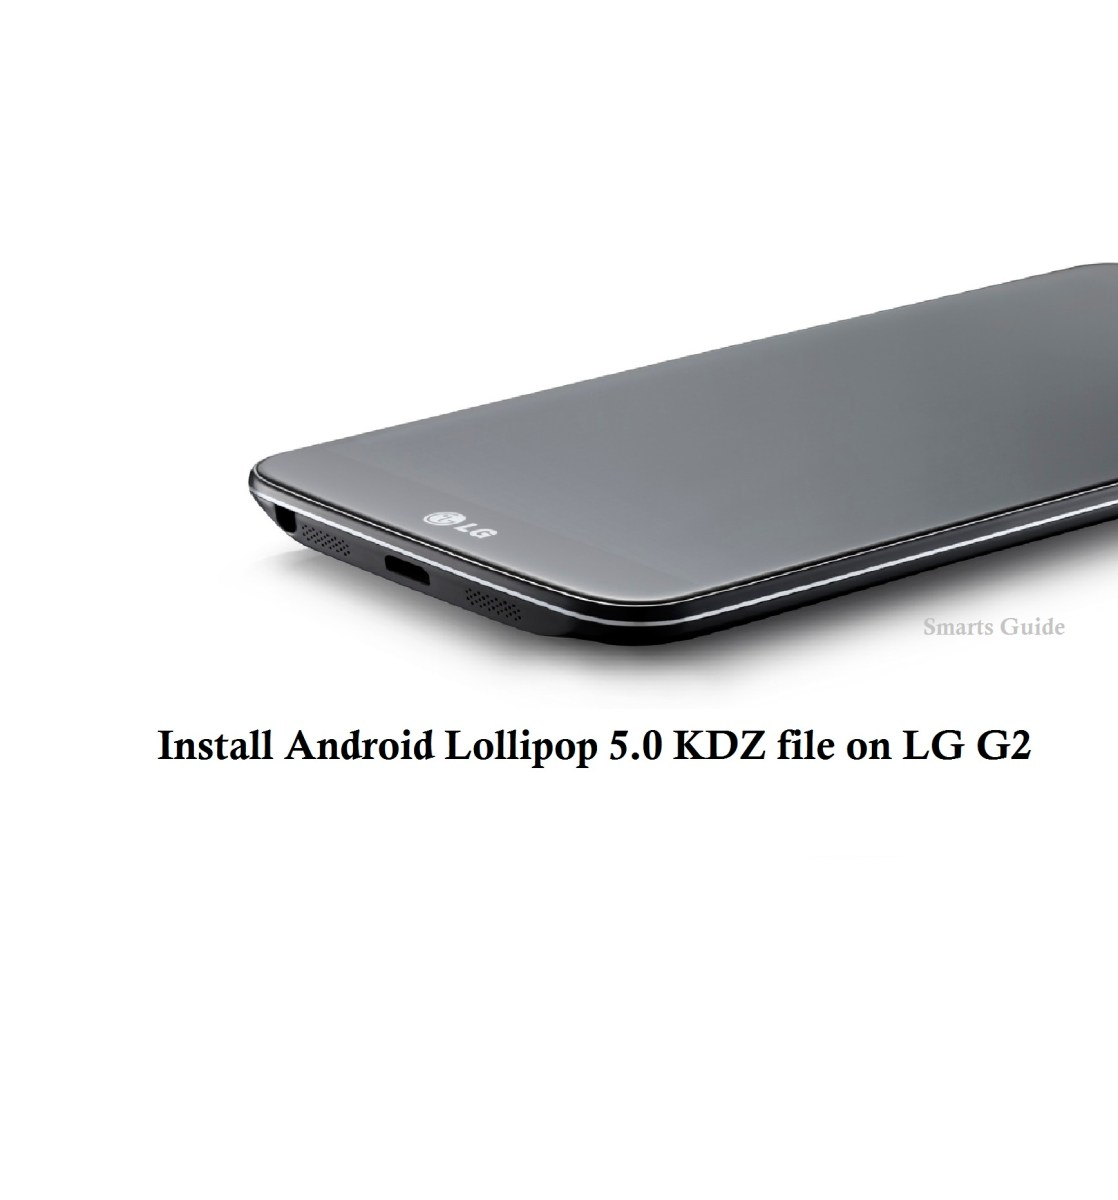 How to Install Android 5.0 Lollipop KDZ File on LG G2 (D802)